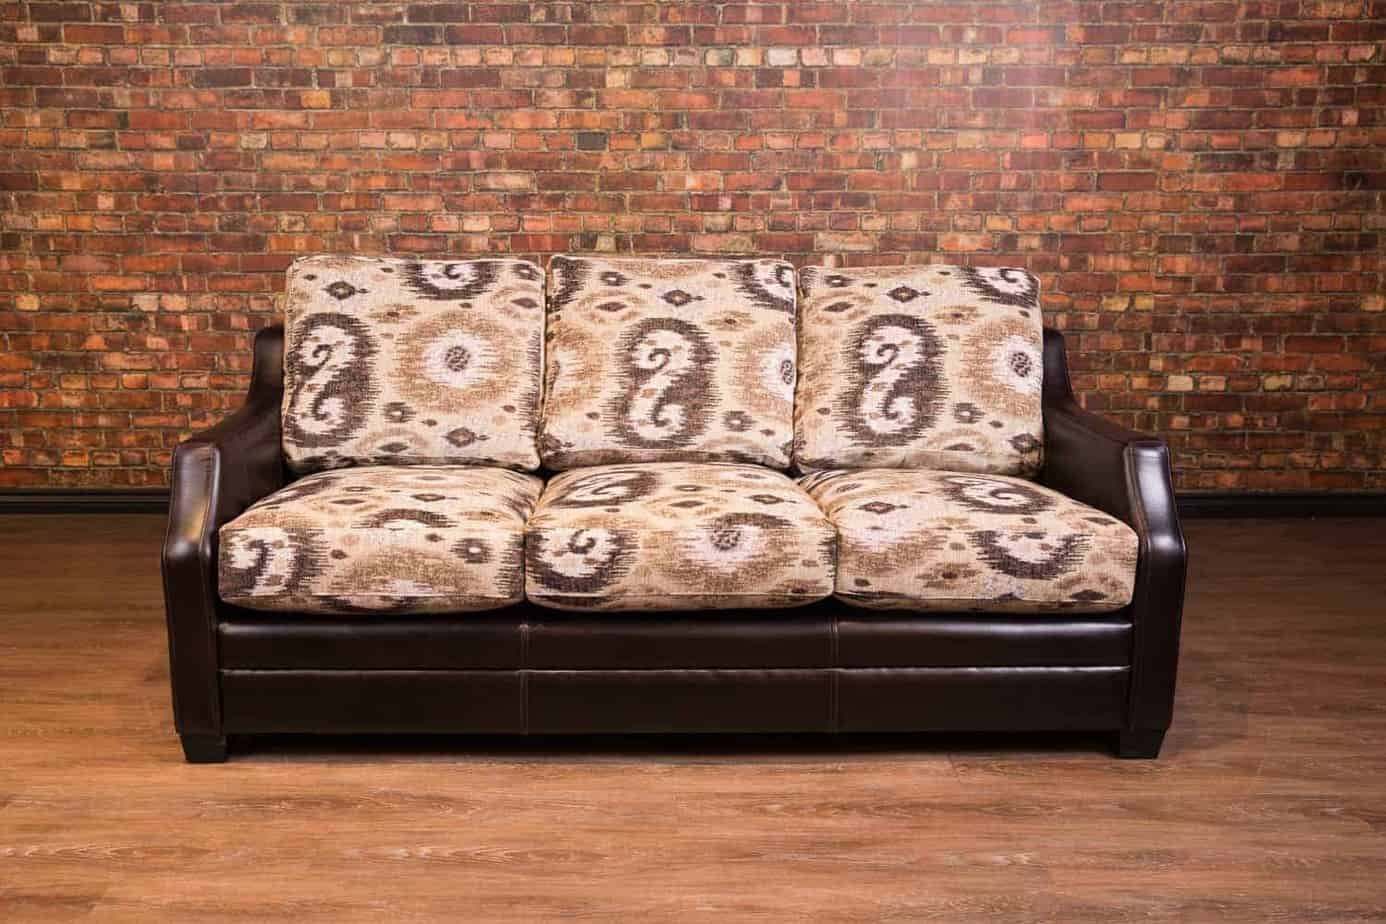 El Paso Leather Fabric Sofa Canadas Boss Leather Sofas And Furniture